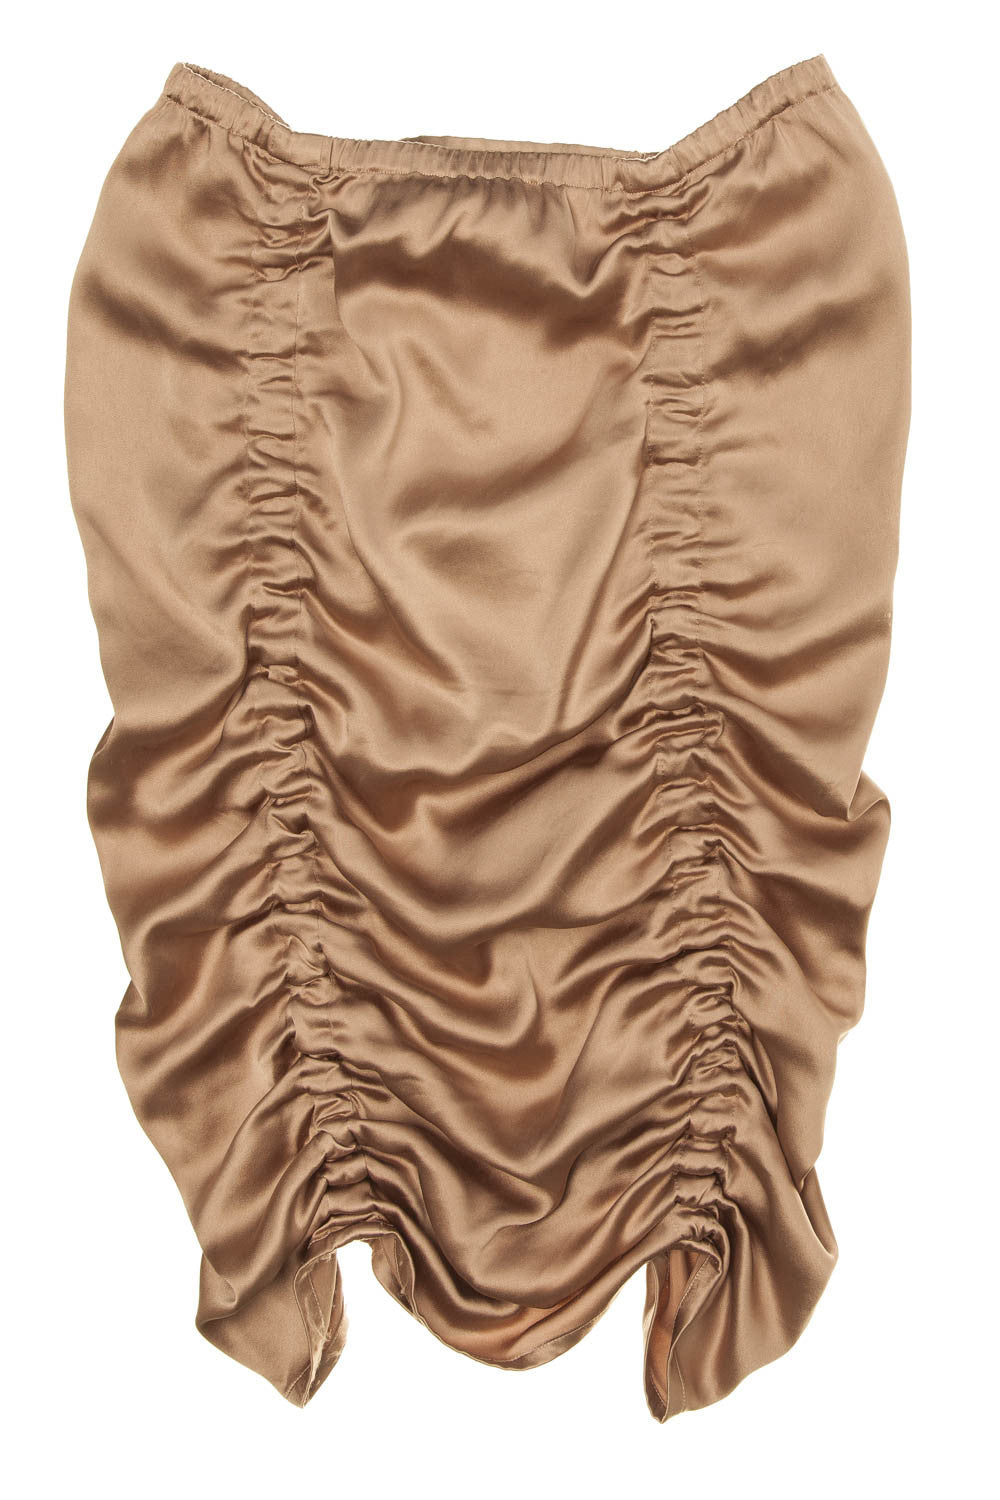 1c7ad09e9 Iconic Tom Ford for Gucci - Ruffled Dusty Rose Skirt - IT 40 – LUXHAVE